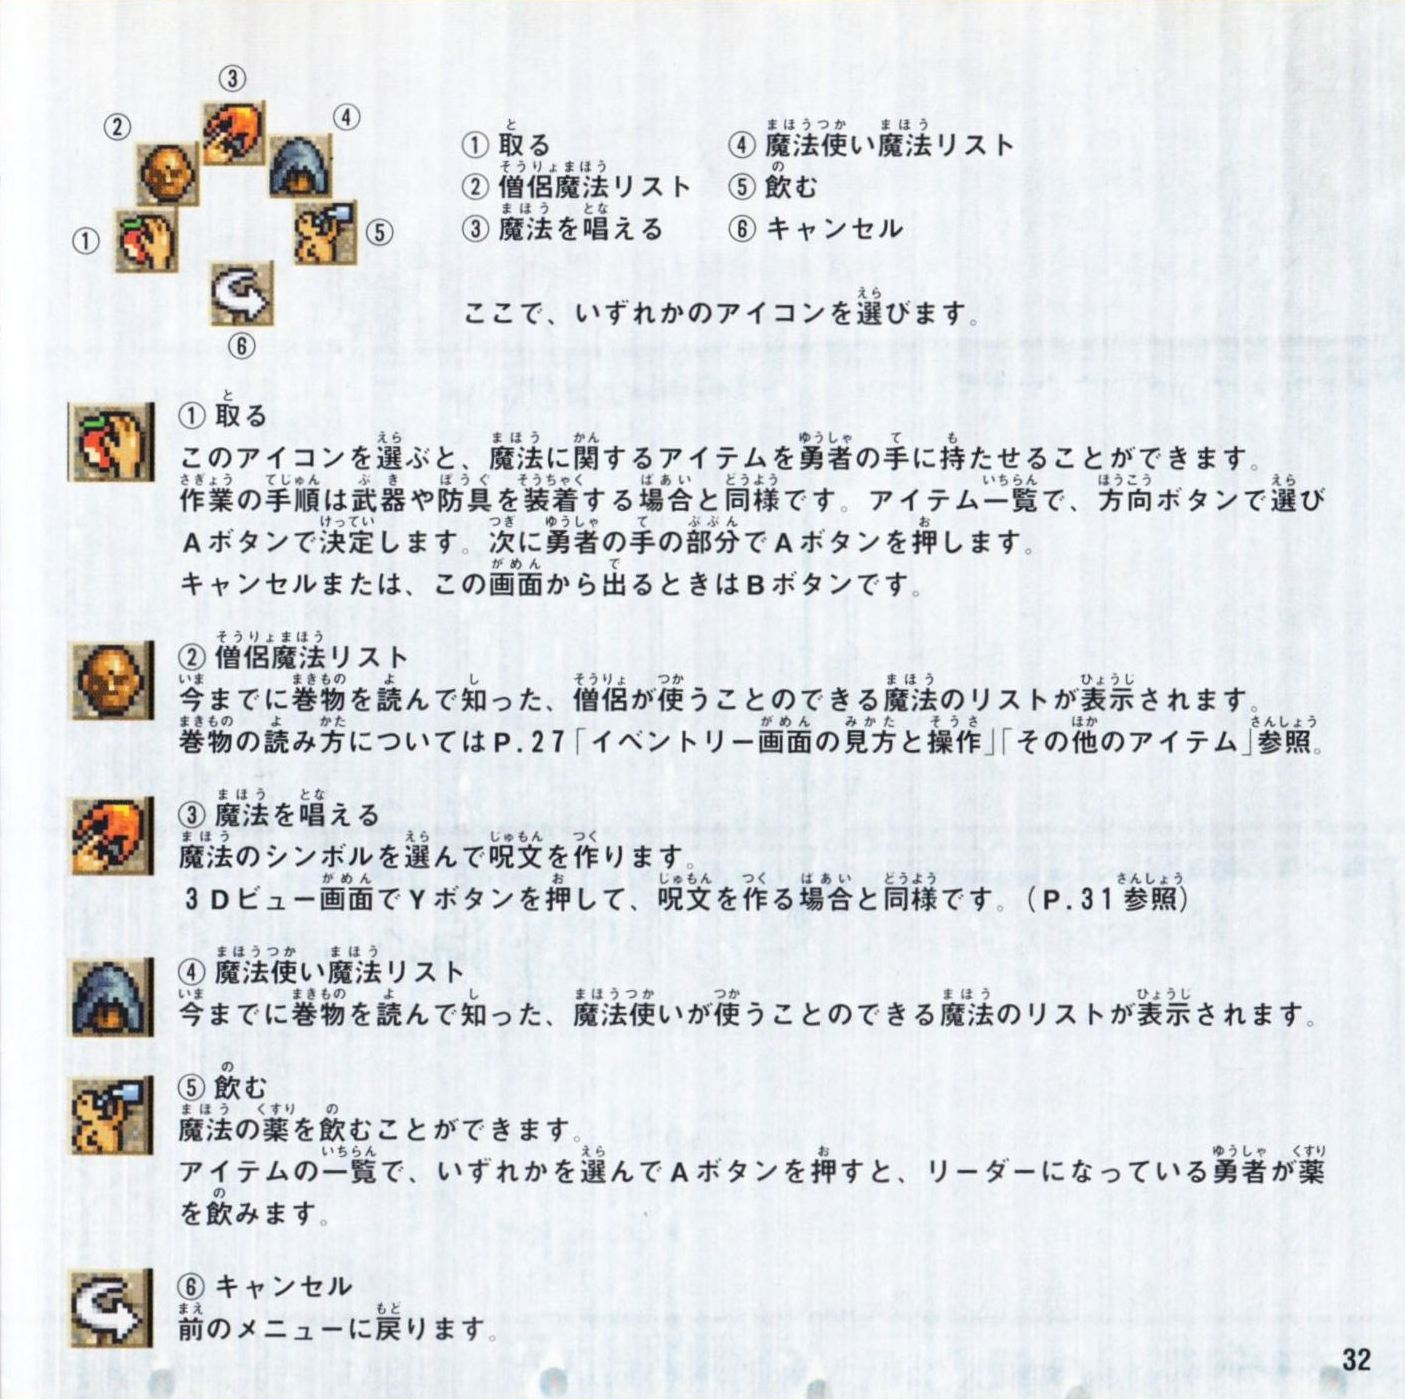 Game - Dungeon Master Nexus - JP - Sega Saturn - Booklet - Page 033 - Scan